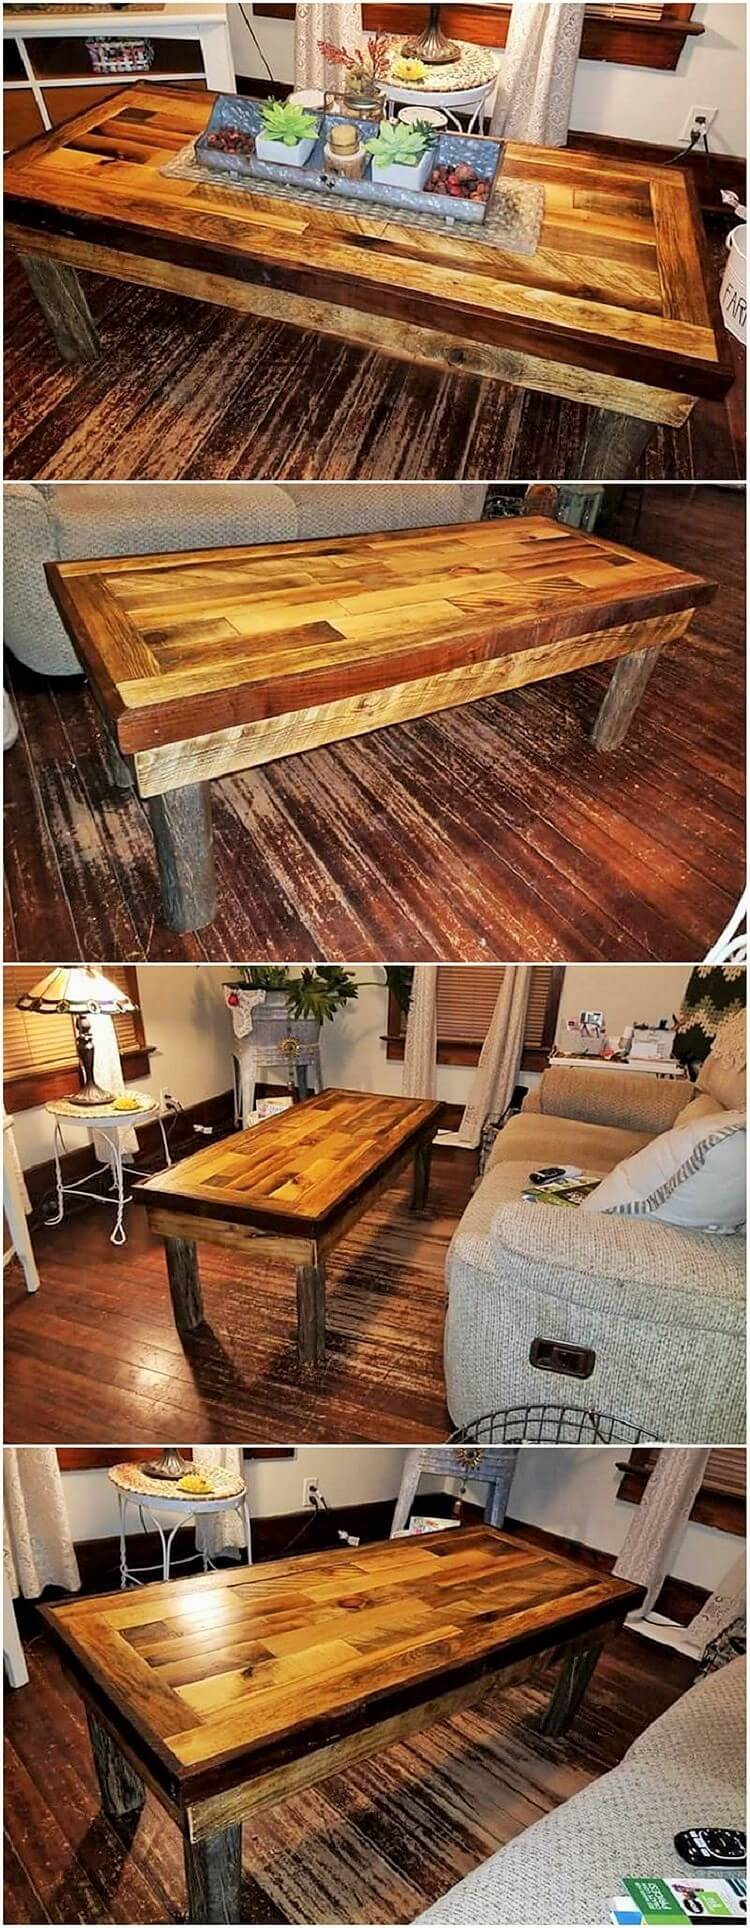 Old-Pallet- Diy-Recycle-Things-Projects-25